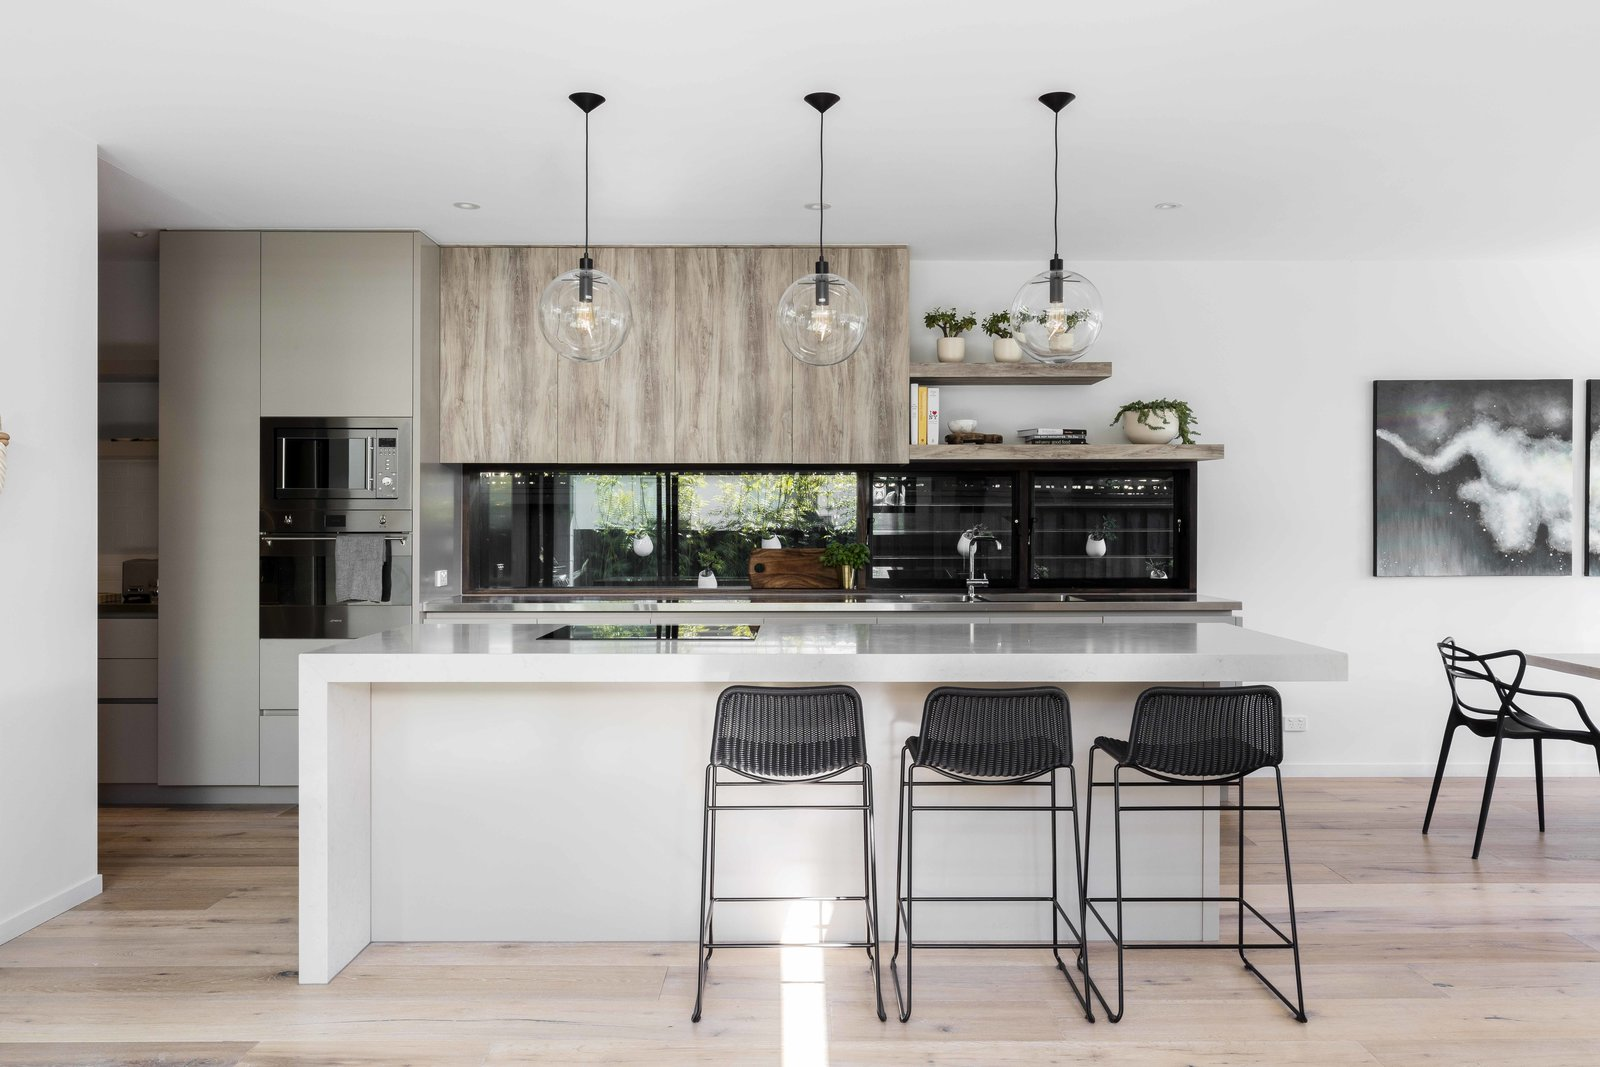 Kitchen, Stone Counter, Wood Cabinet, Light Hardwood Floor, Ceiling Lighting, Pendant Lighting, Range Hood, and Wall Oven  The Rose Bay House by Prebuilt